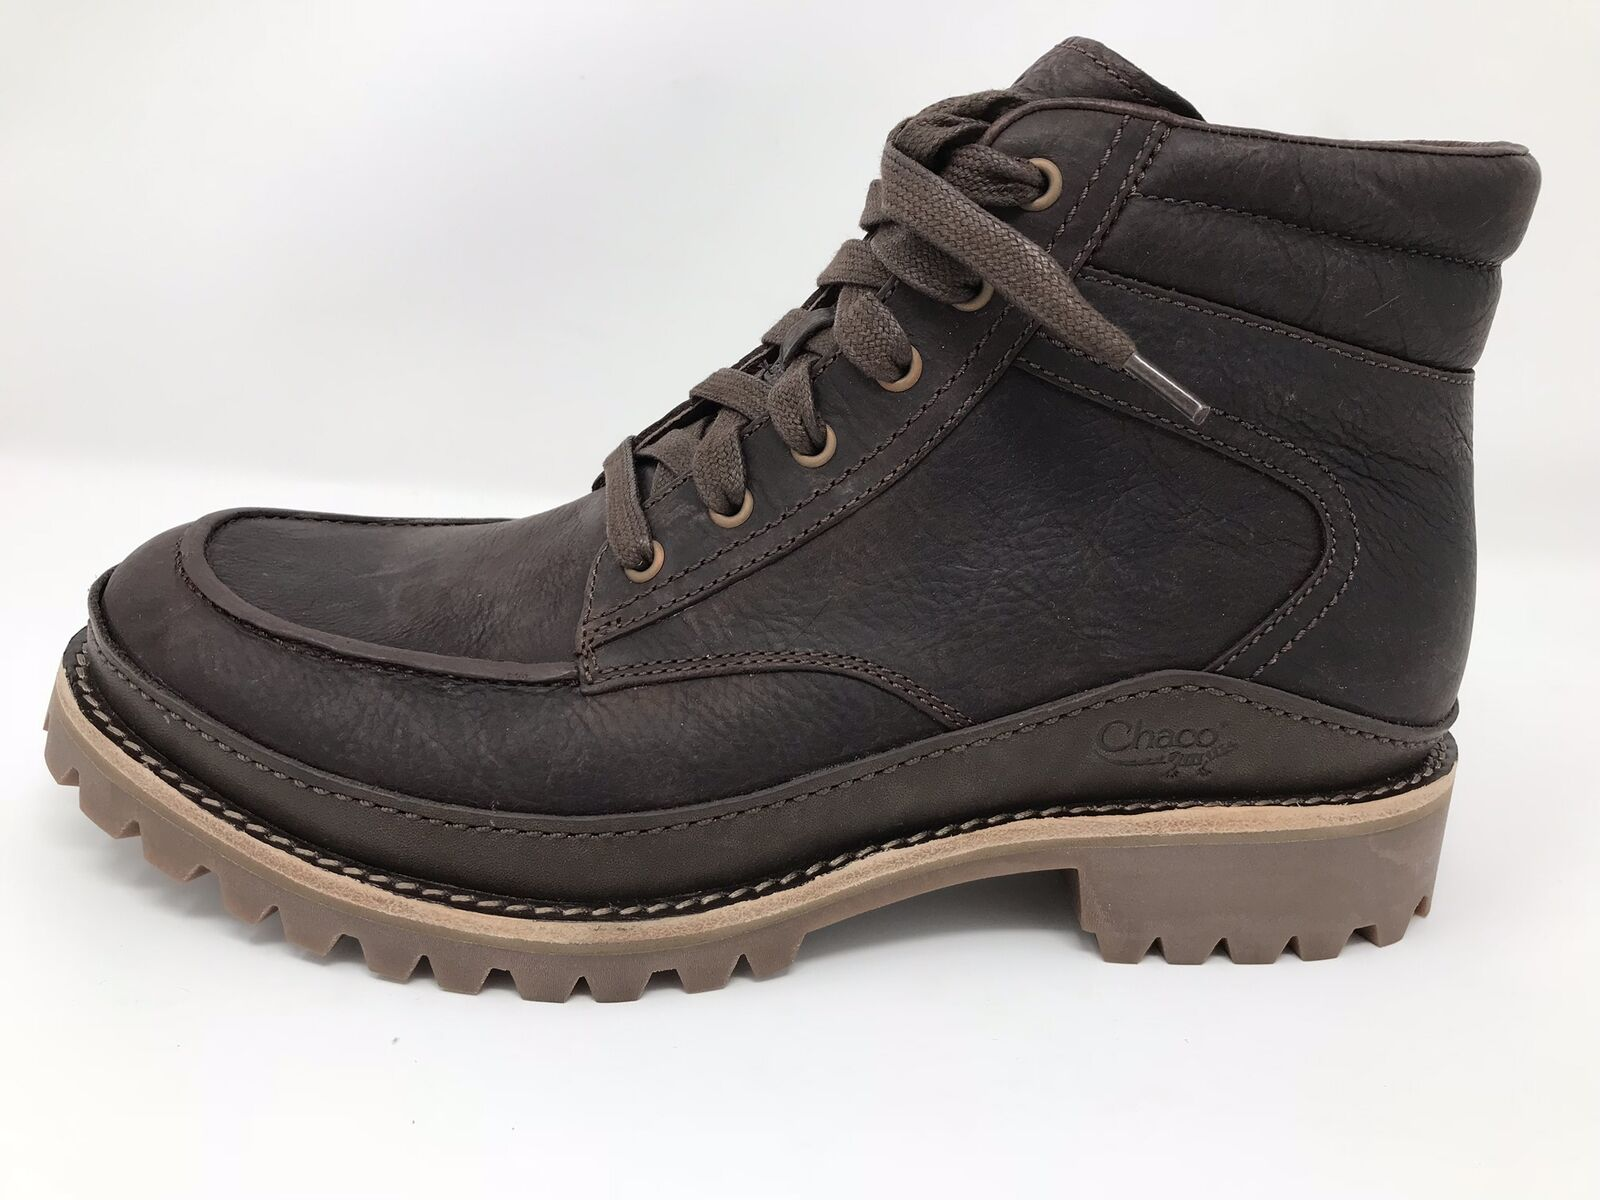 New Chaco Men's Yonder-M skid-resistant Boot J150099, Baker Chocolate, 9 M US